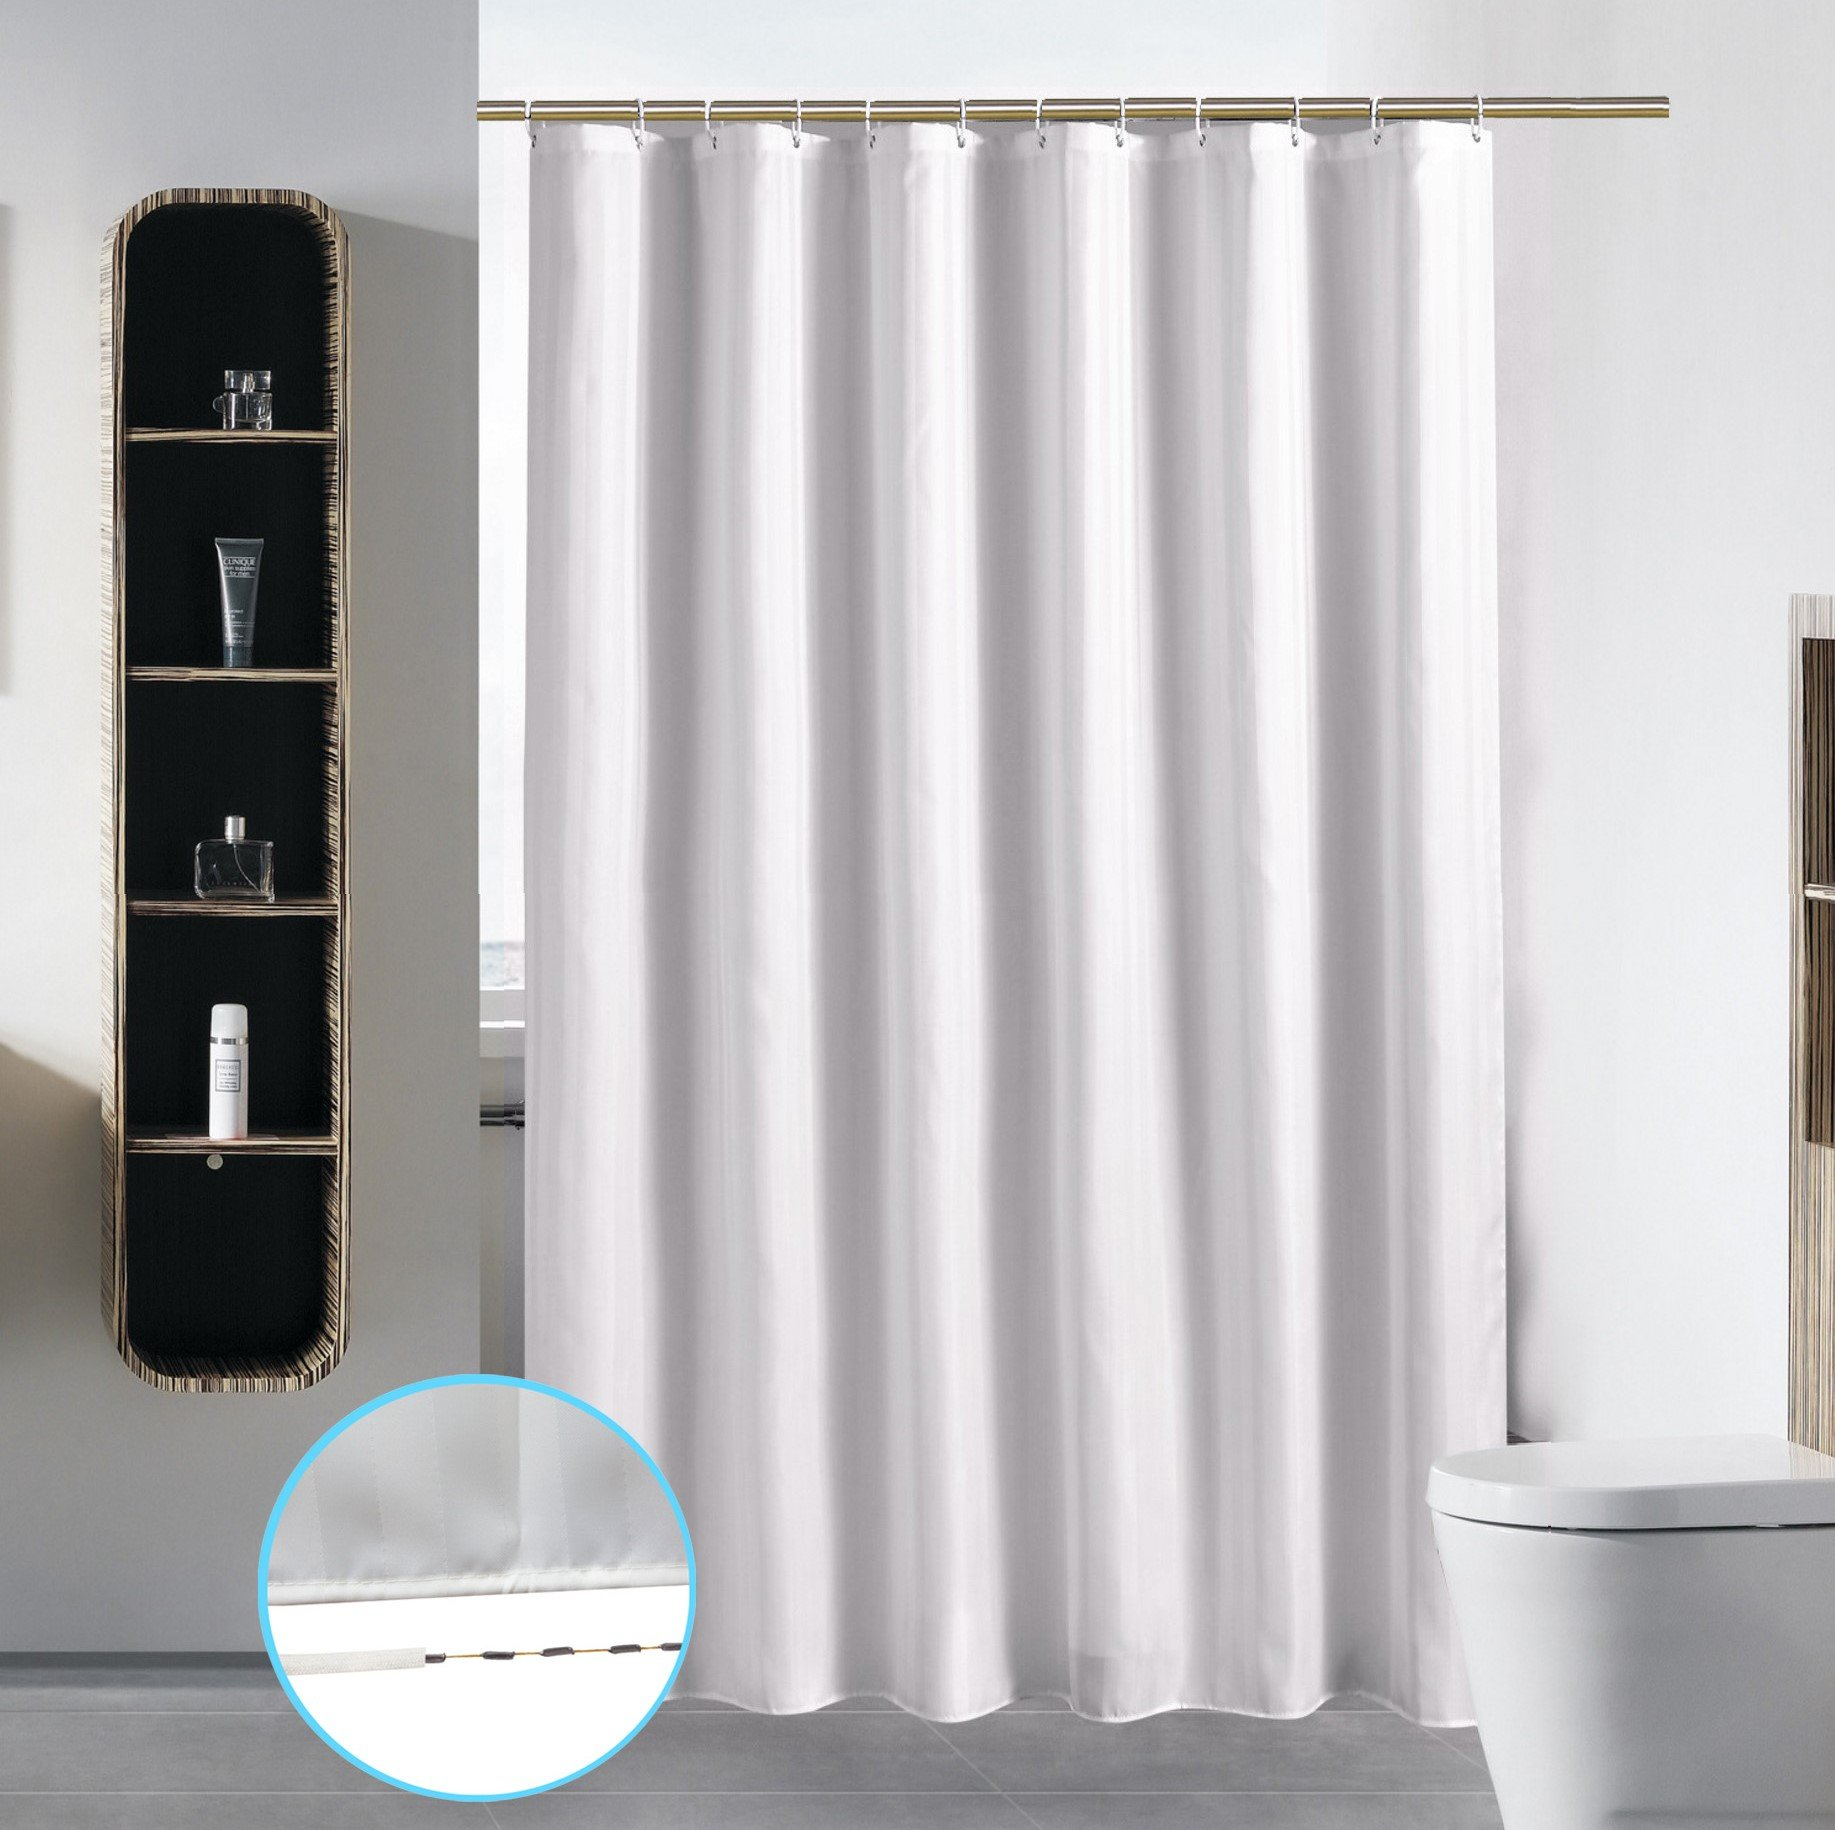 Stall Shower Curtain Liner for Bathroom Washable Fabric Waterproof Cloth Mildew Resistant Polyester (Best Small Size Hotel Quality Eco Friendly) with Curved Plastic Hooks Set - 54'' x 78'', Stripe White